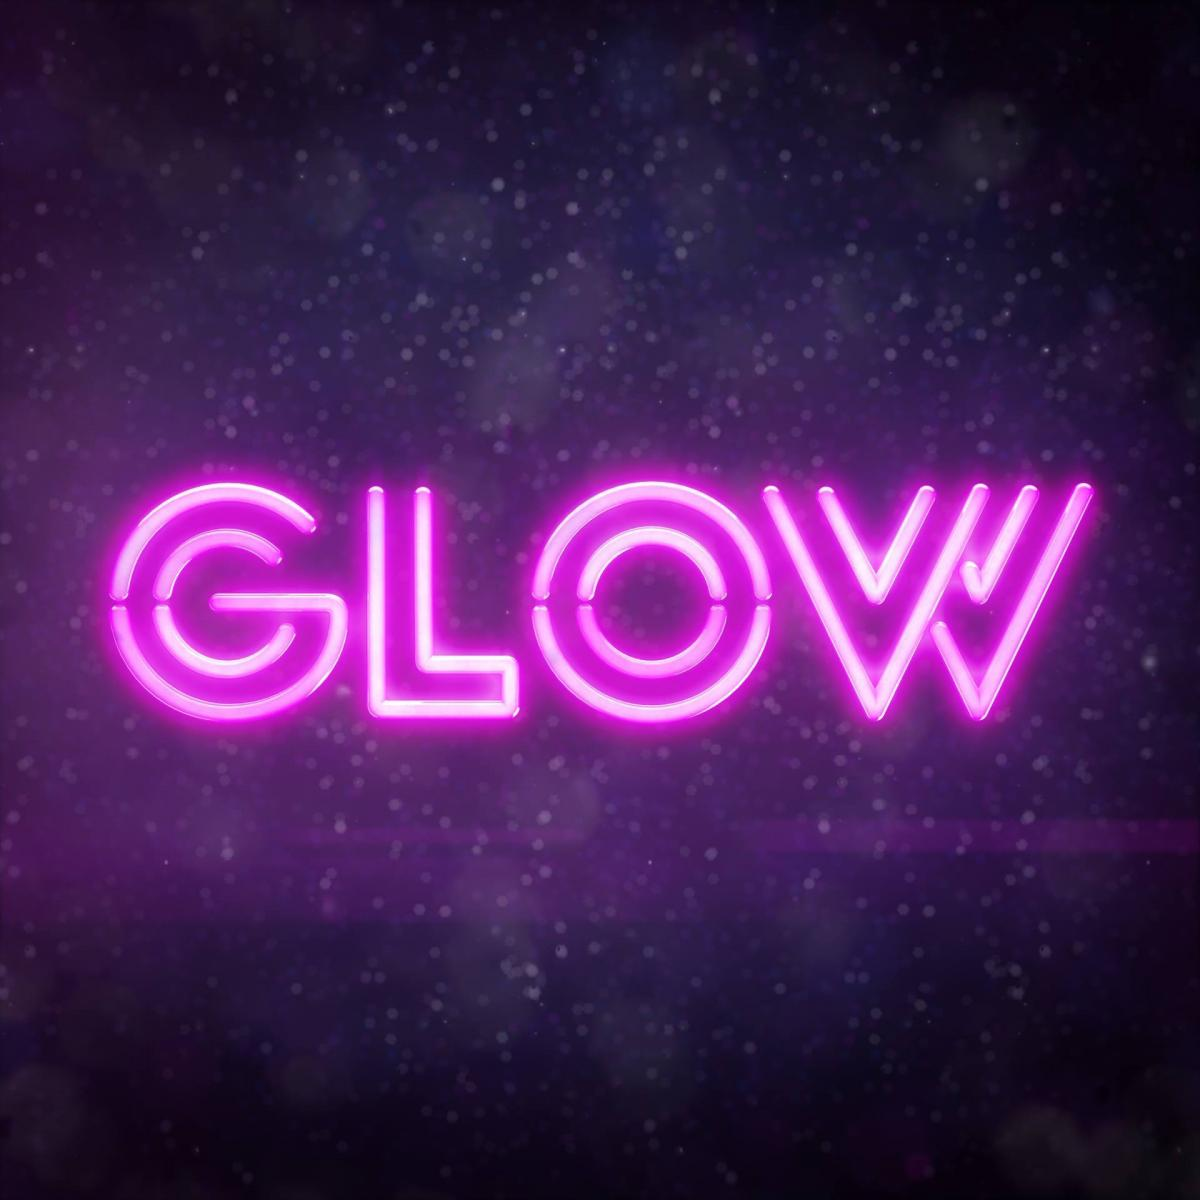 Girls Wallpaper Pack Glow Season One Review Girl Power 80s Hair And Pile